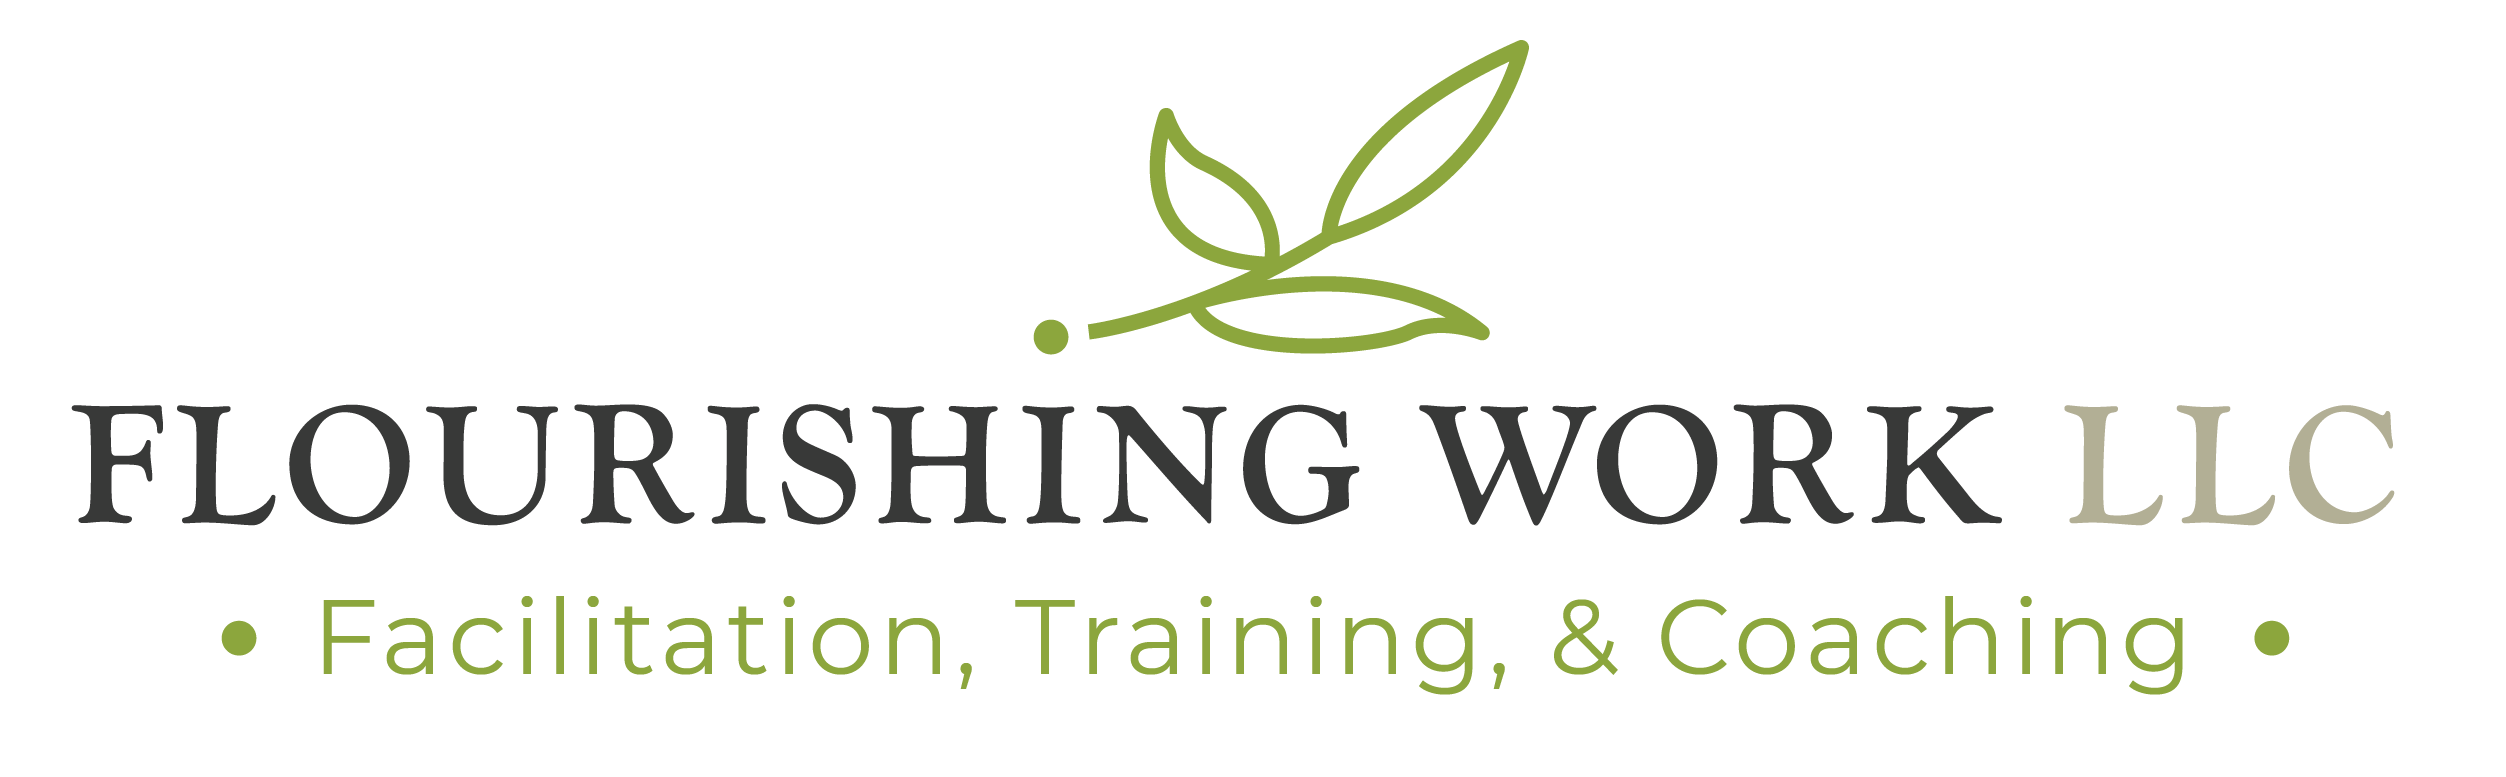 Flourishing Work LLC -- formerly Ashley Freeman, LLC